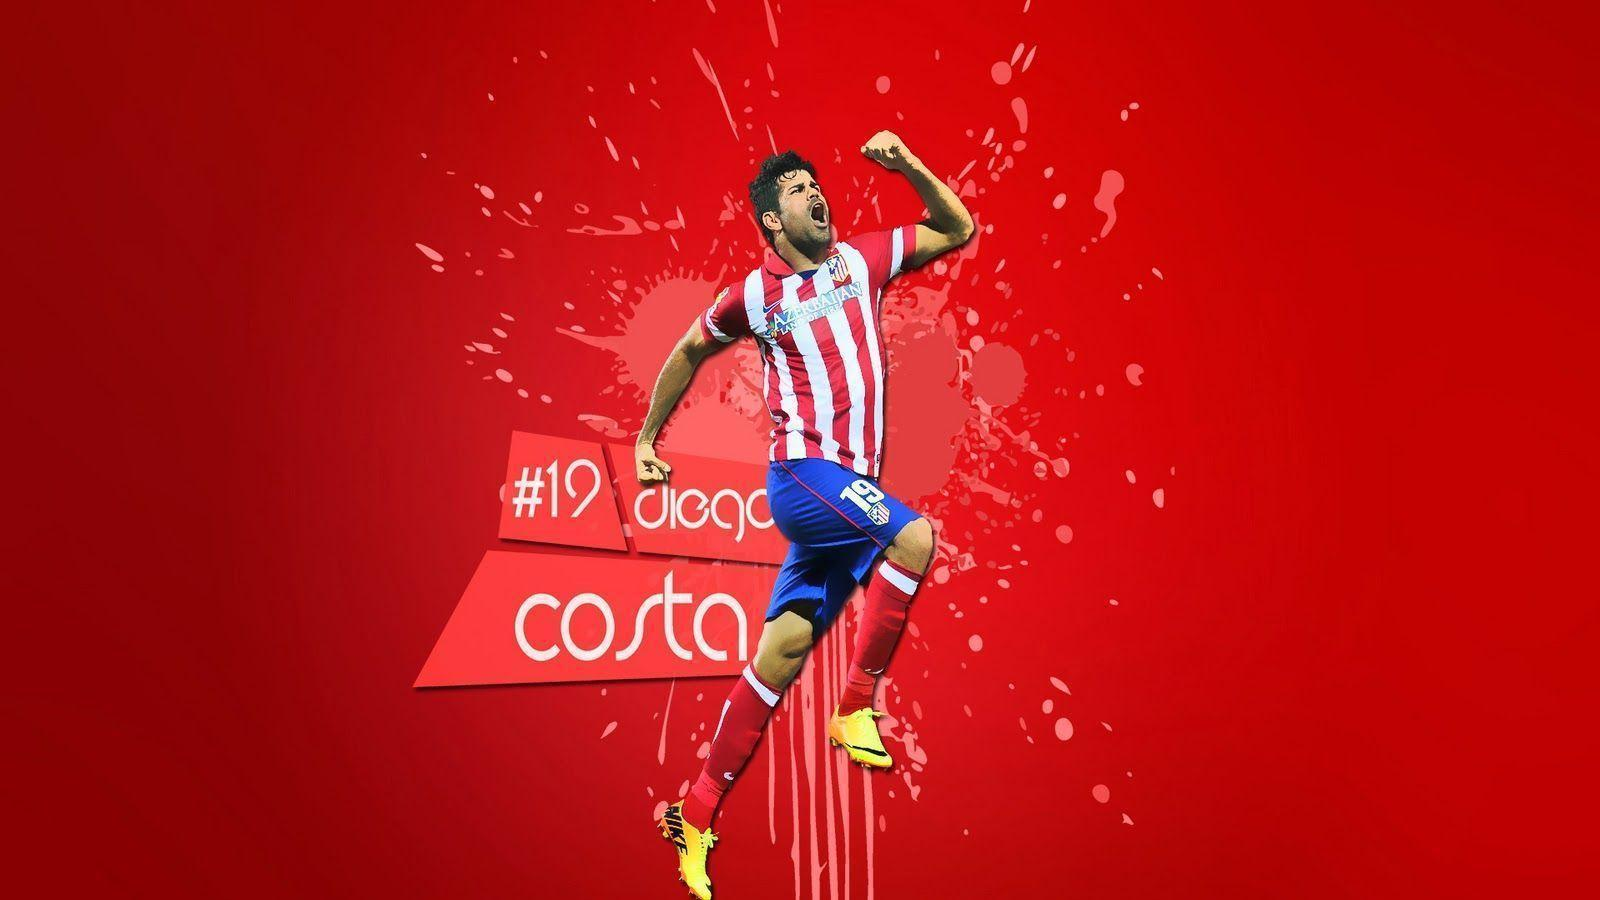 Diego Costa Atletico Madrid FC Wallpapers HQ 38 Wallpapers